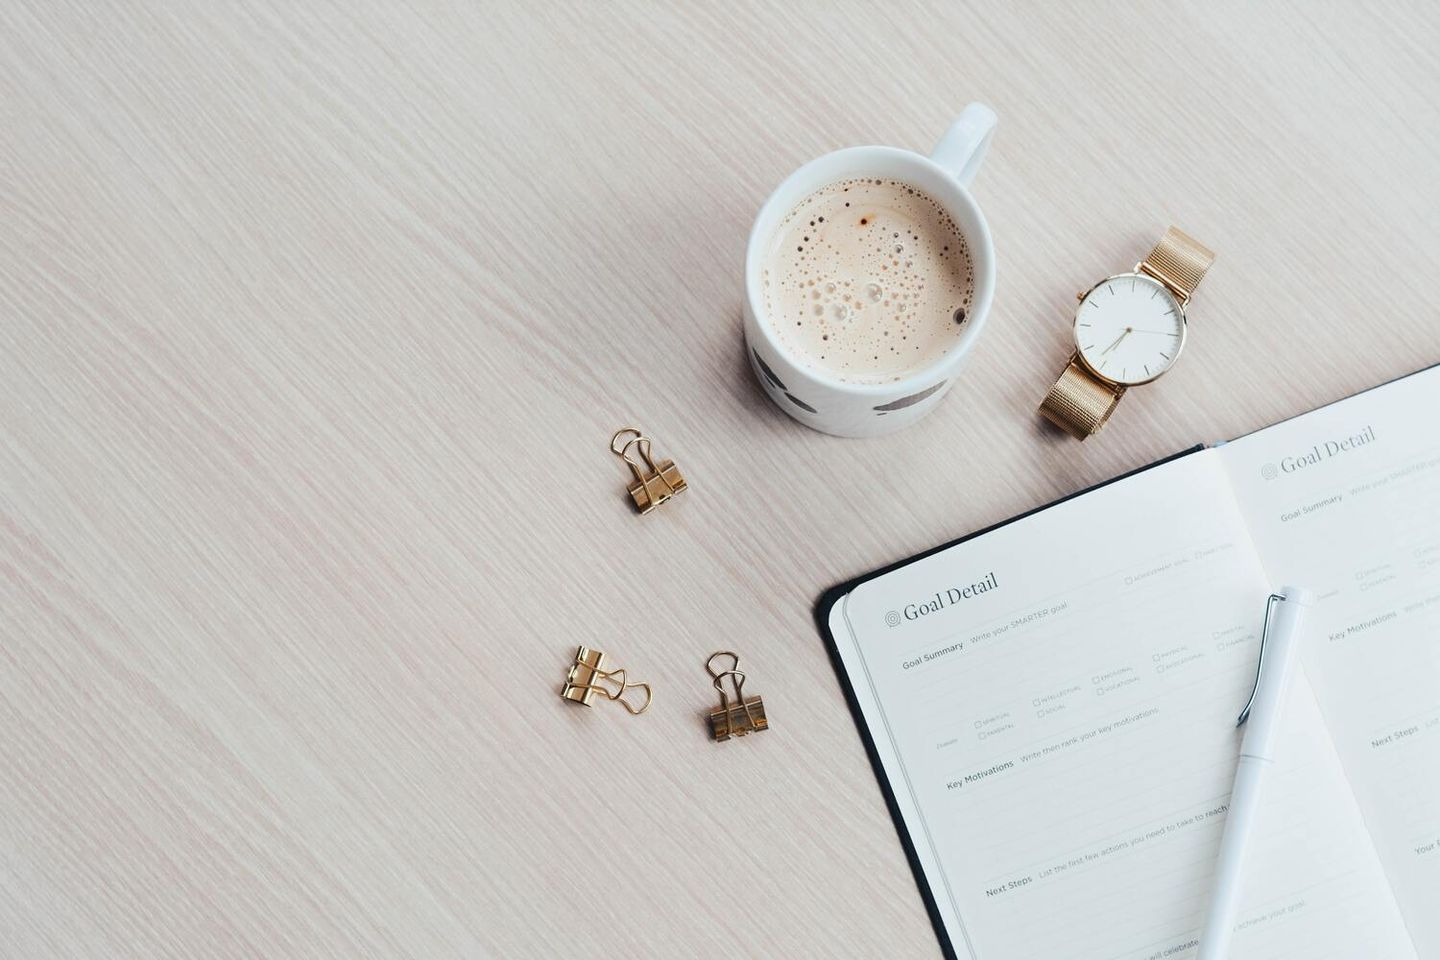 image of freelancer in morning routine with coffee and journal